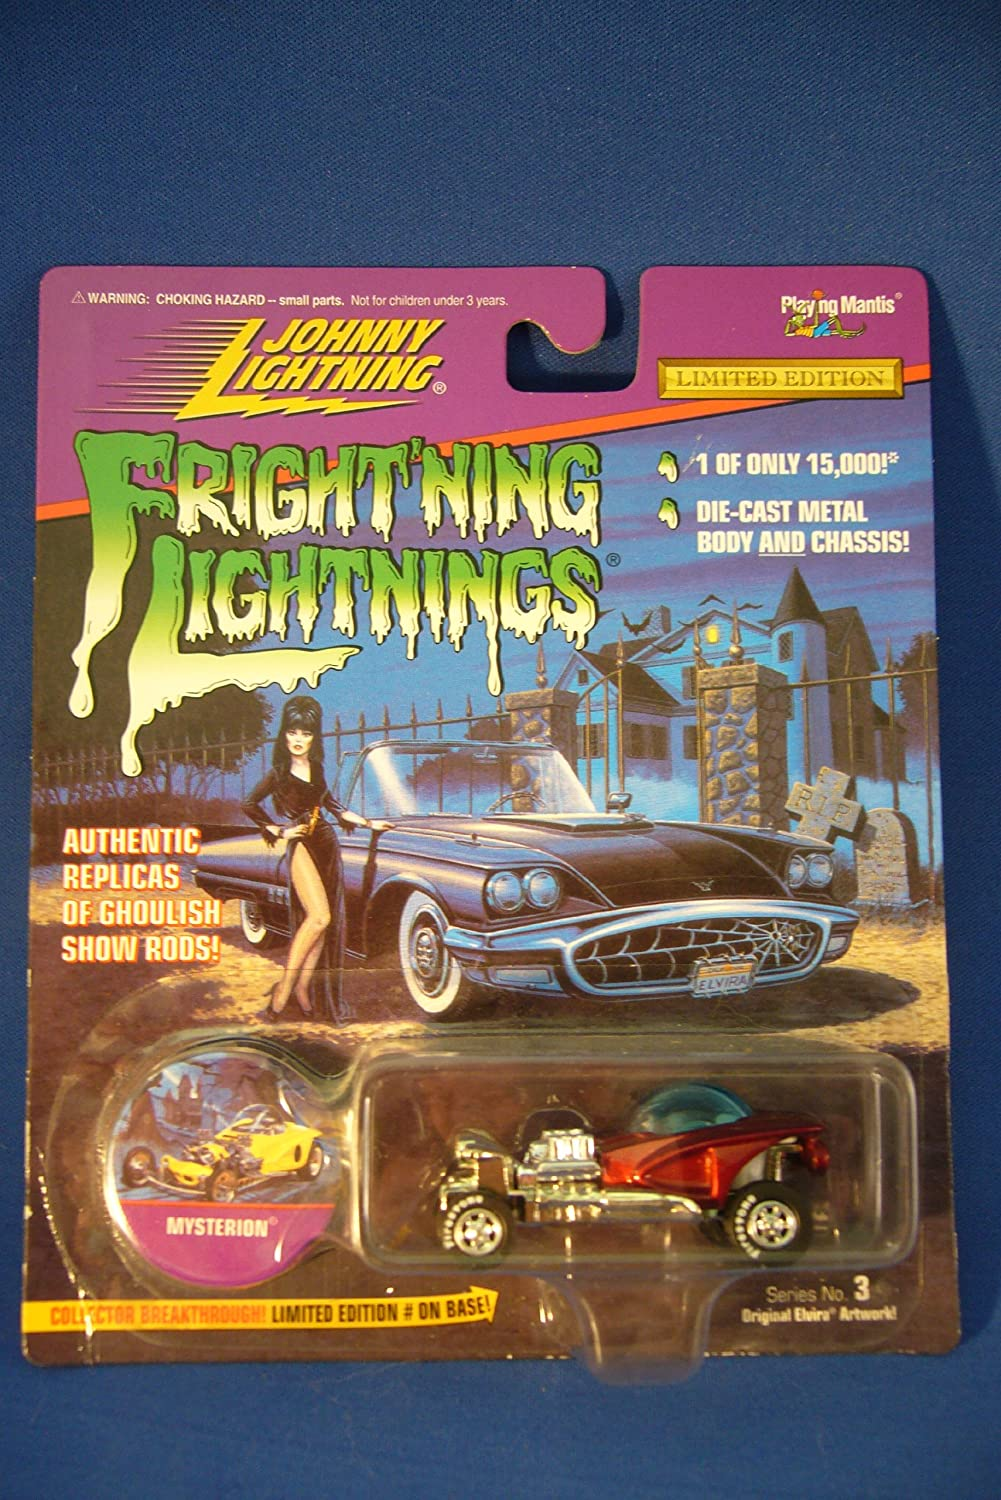 Elvira artwork on card Playing Mantis 411-03 Frightning lightnings JOHNNY LIGHTNING limited edition BOOTHILL EXPRESS grey series 3